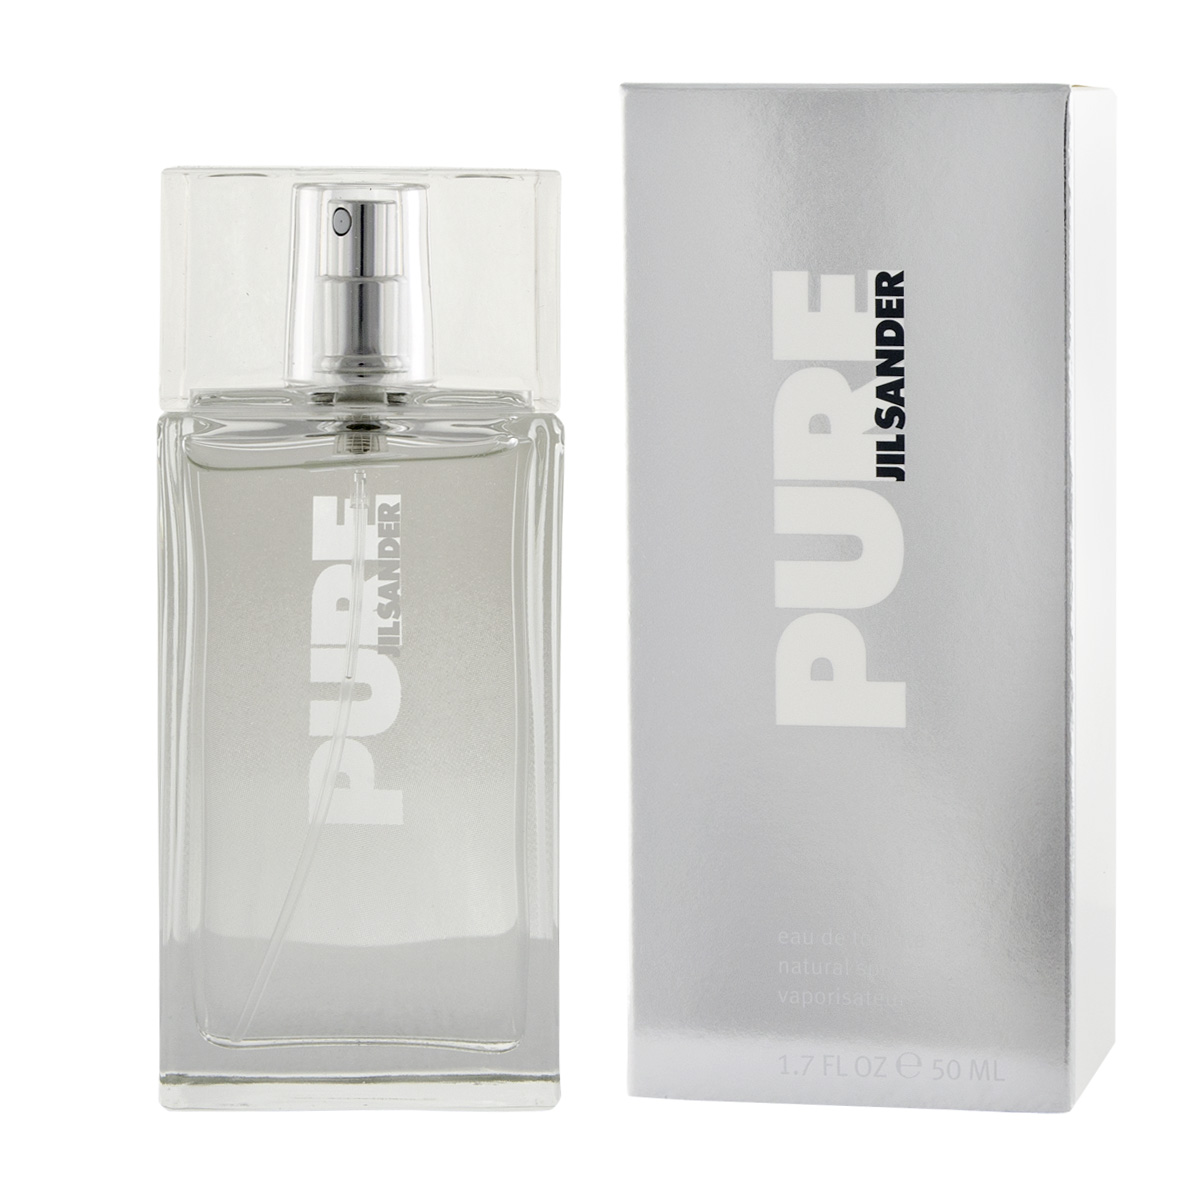 Jil Sander Pure for Women Eau De Toilette 50 ml (woman)